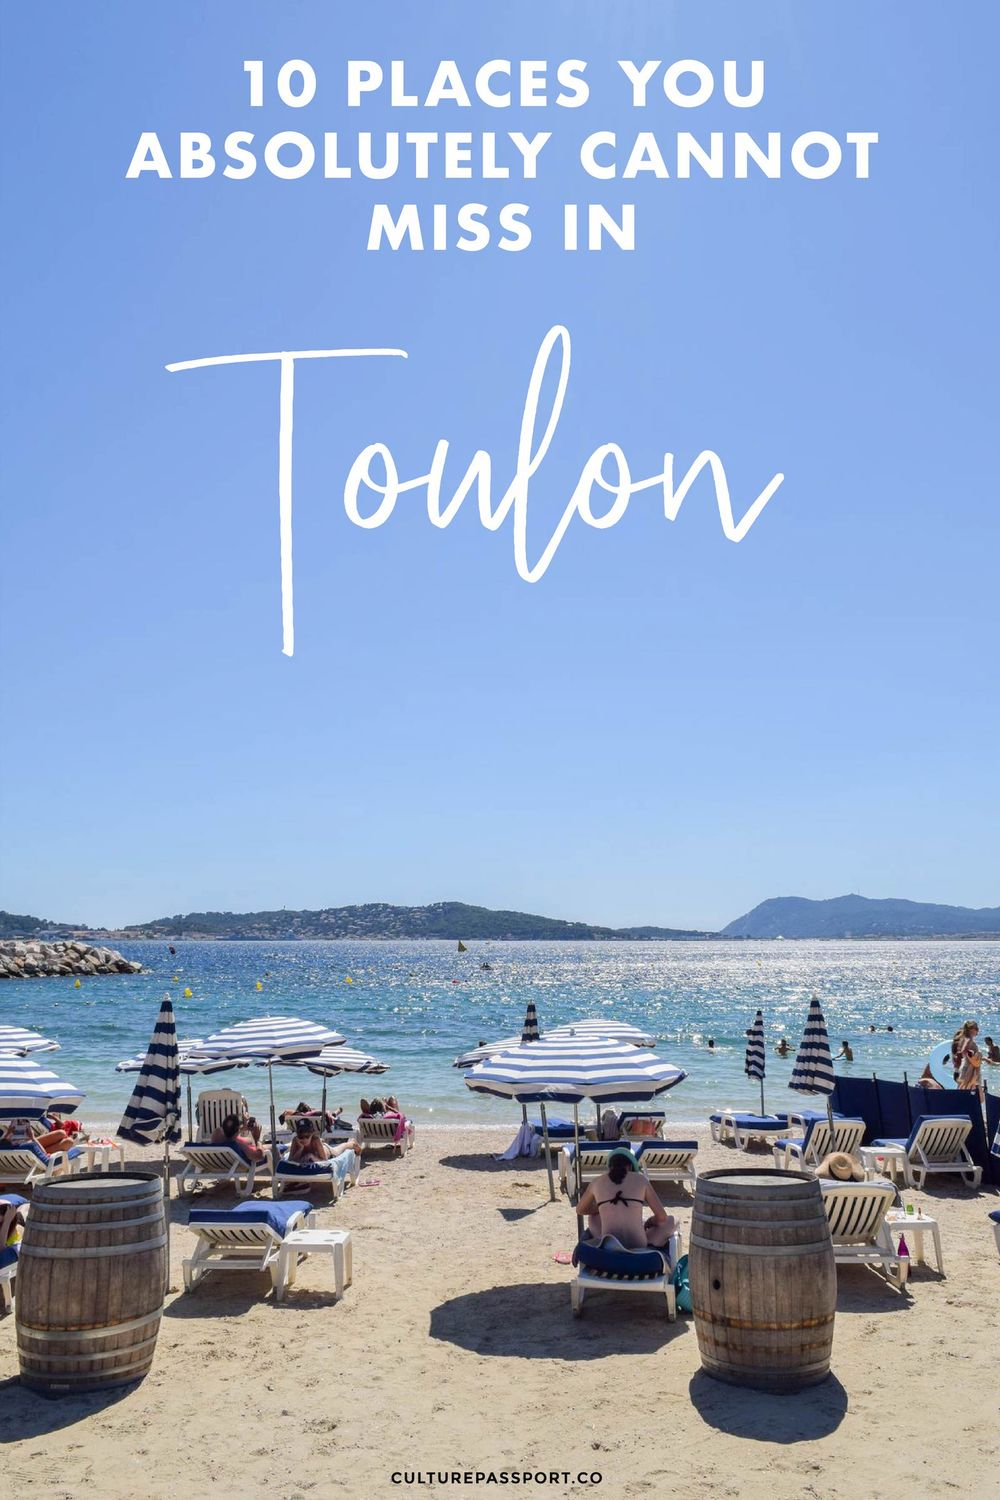 10 Places You Absolutely Cannot Miss In Toulon, France!